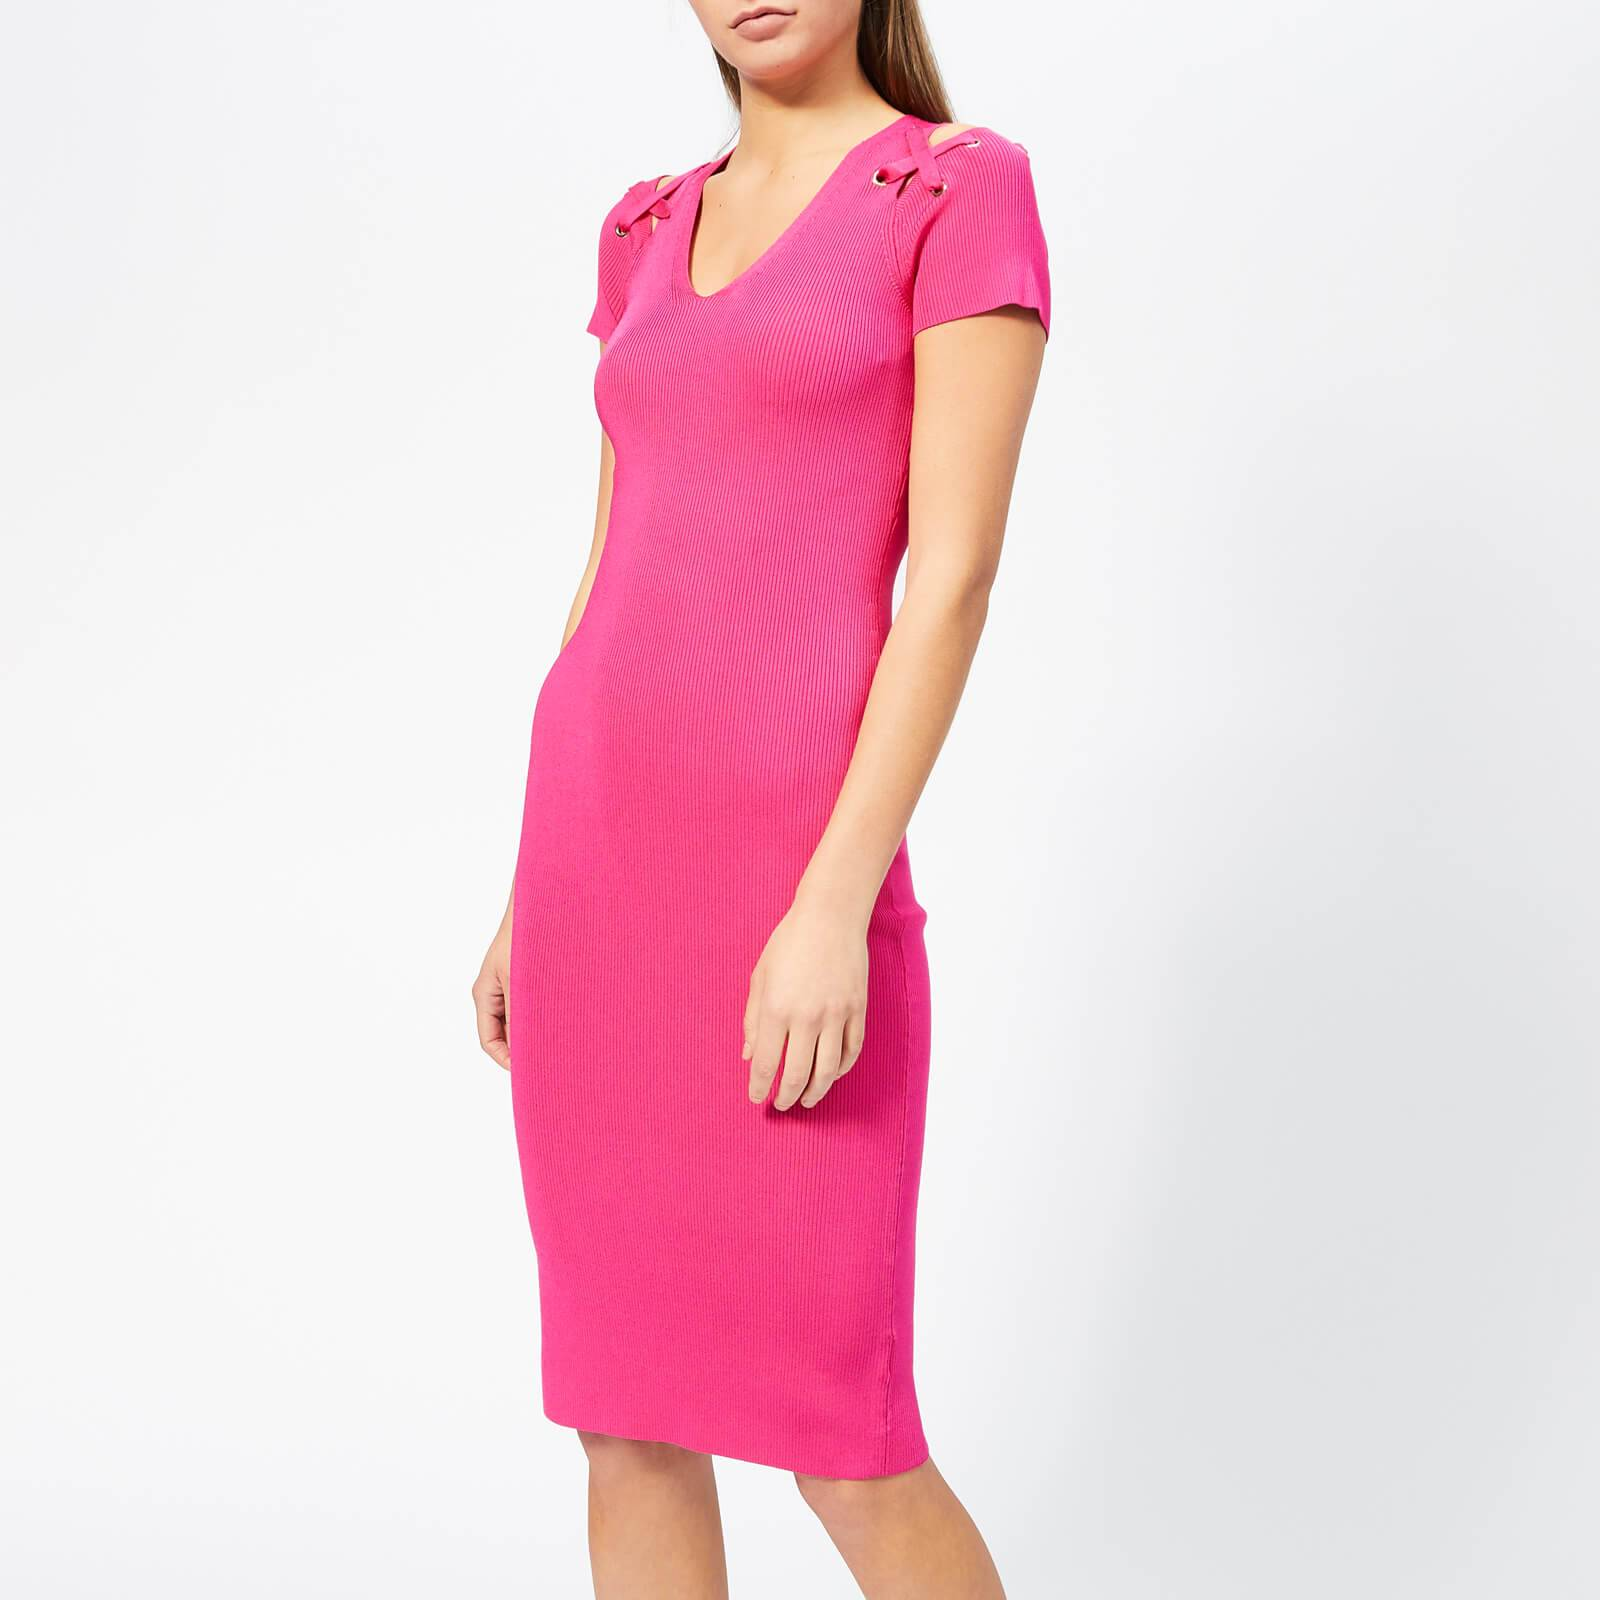 MICHAEL MICHAEL KORS Women's Cut Out Lace Up V Neck Dress - Electric Pink - XS - Pink